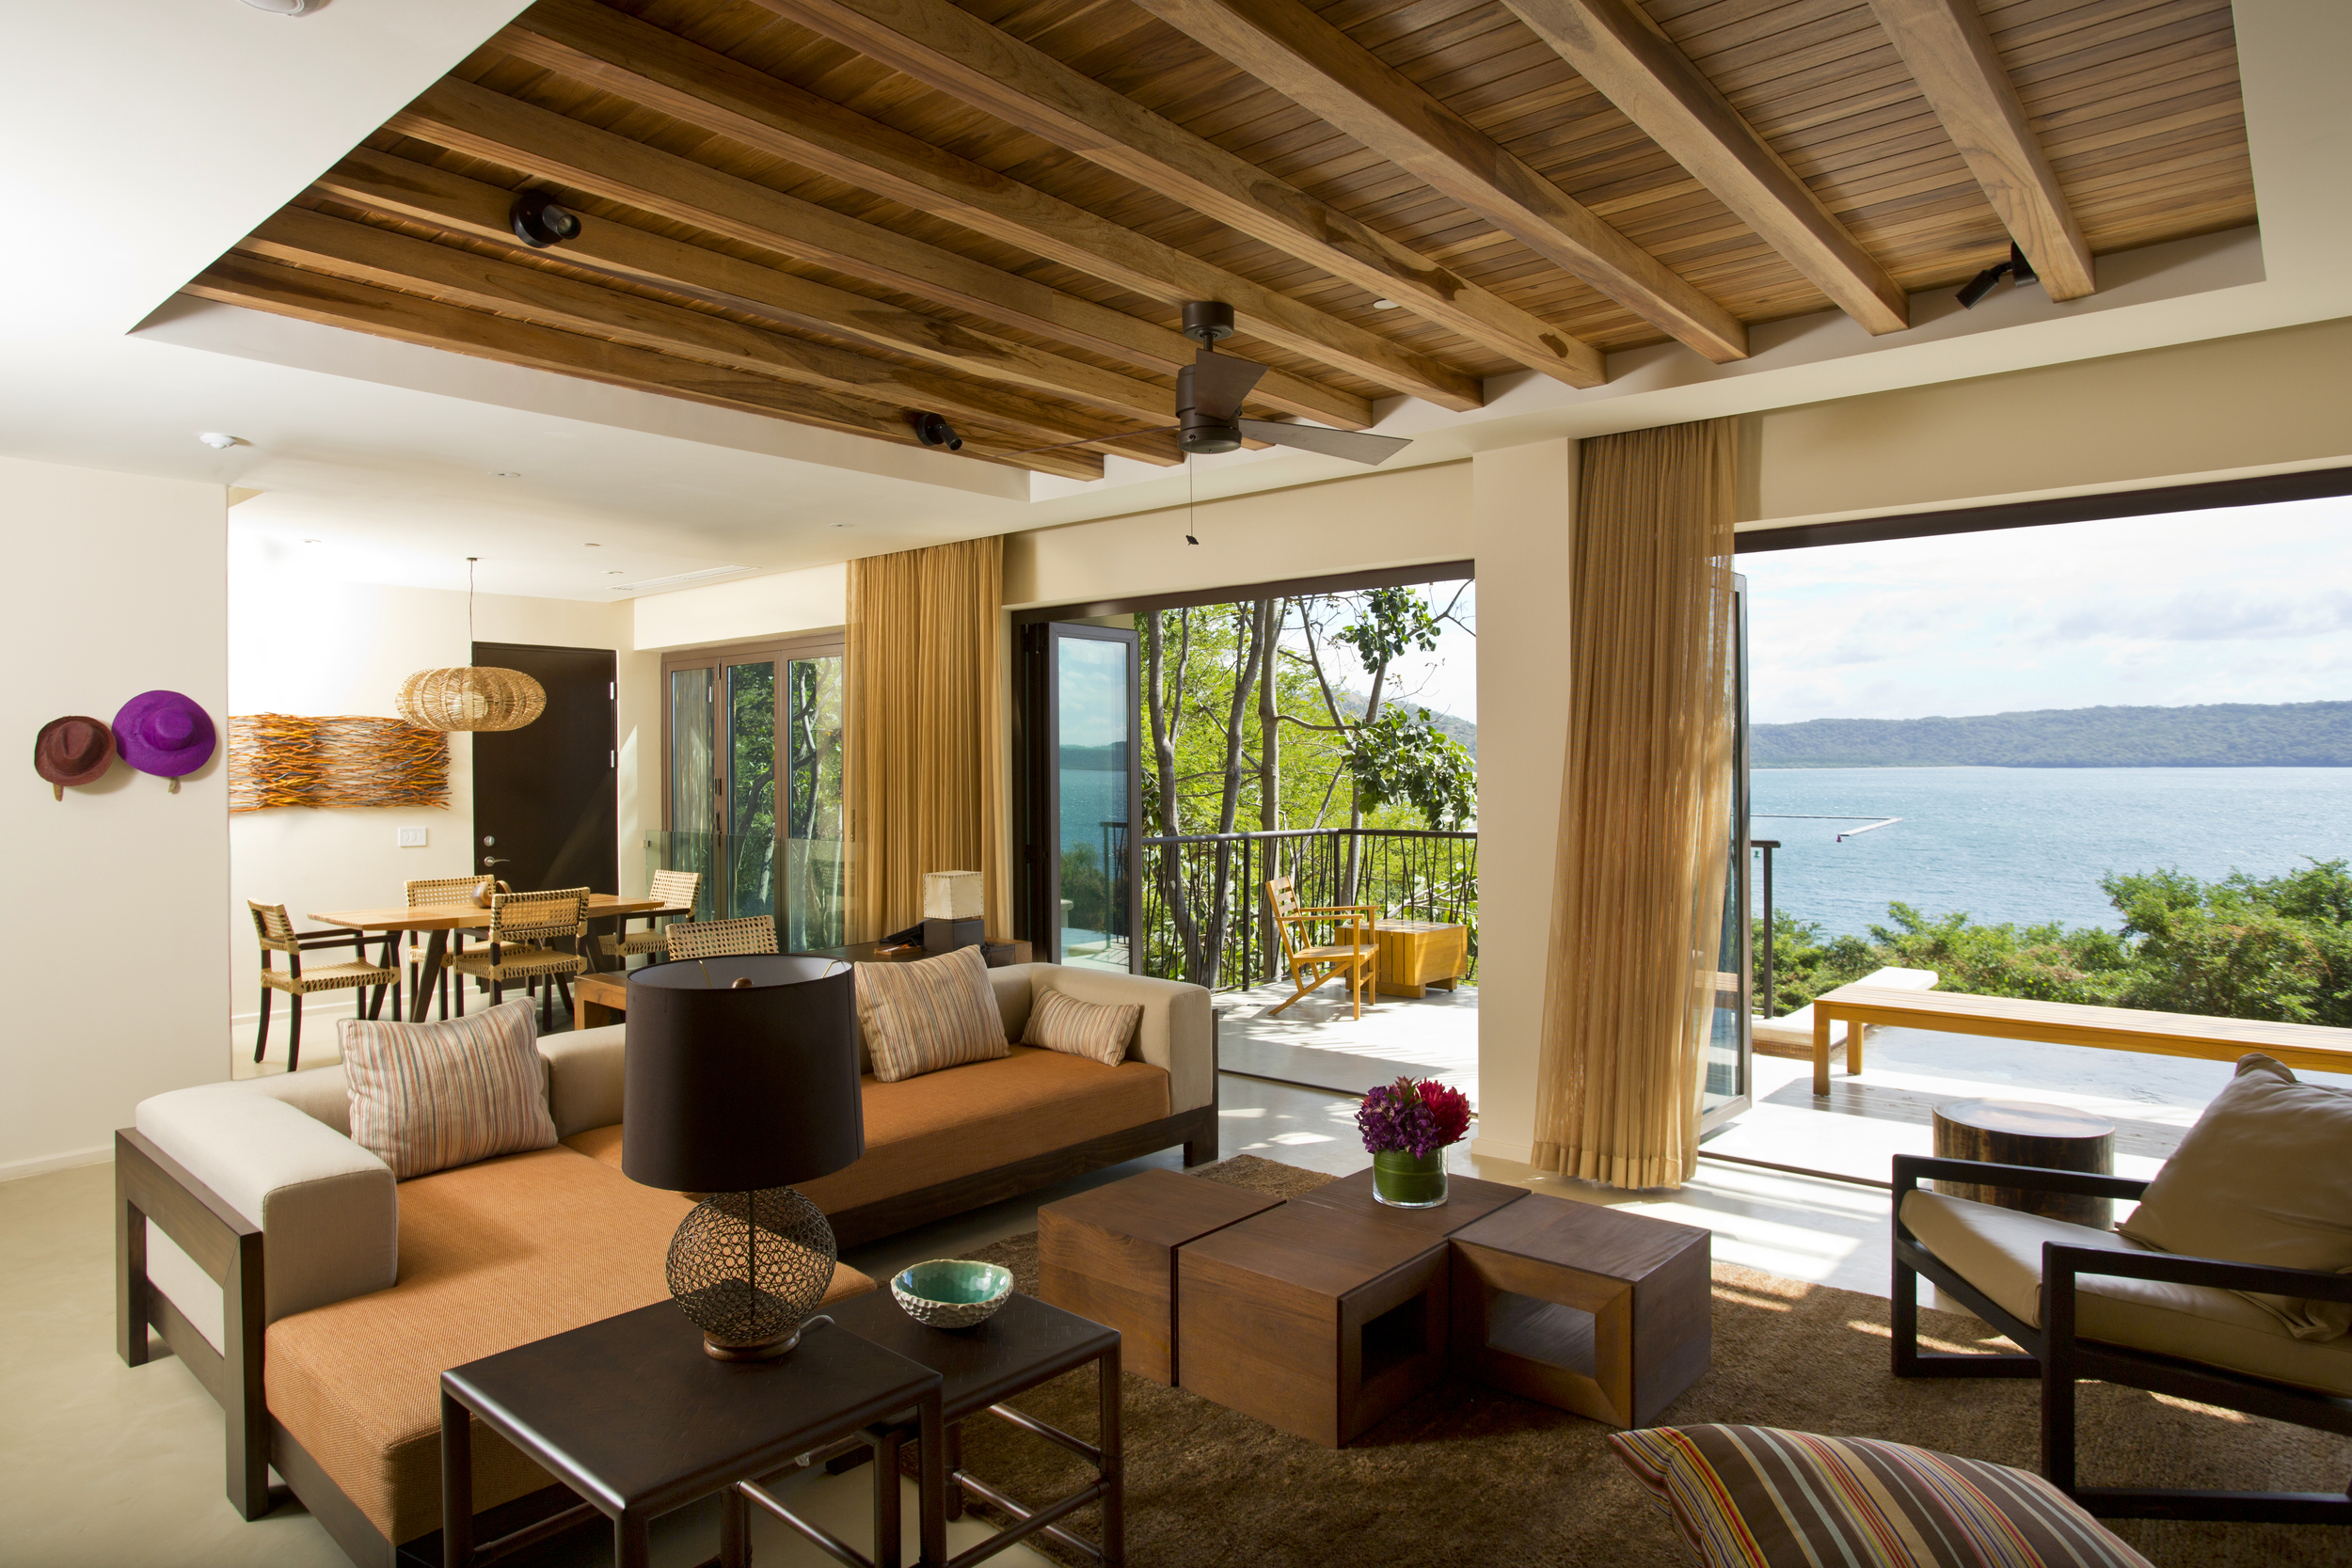 South_America_Costa_Rica_Andaz_Suite.jpg